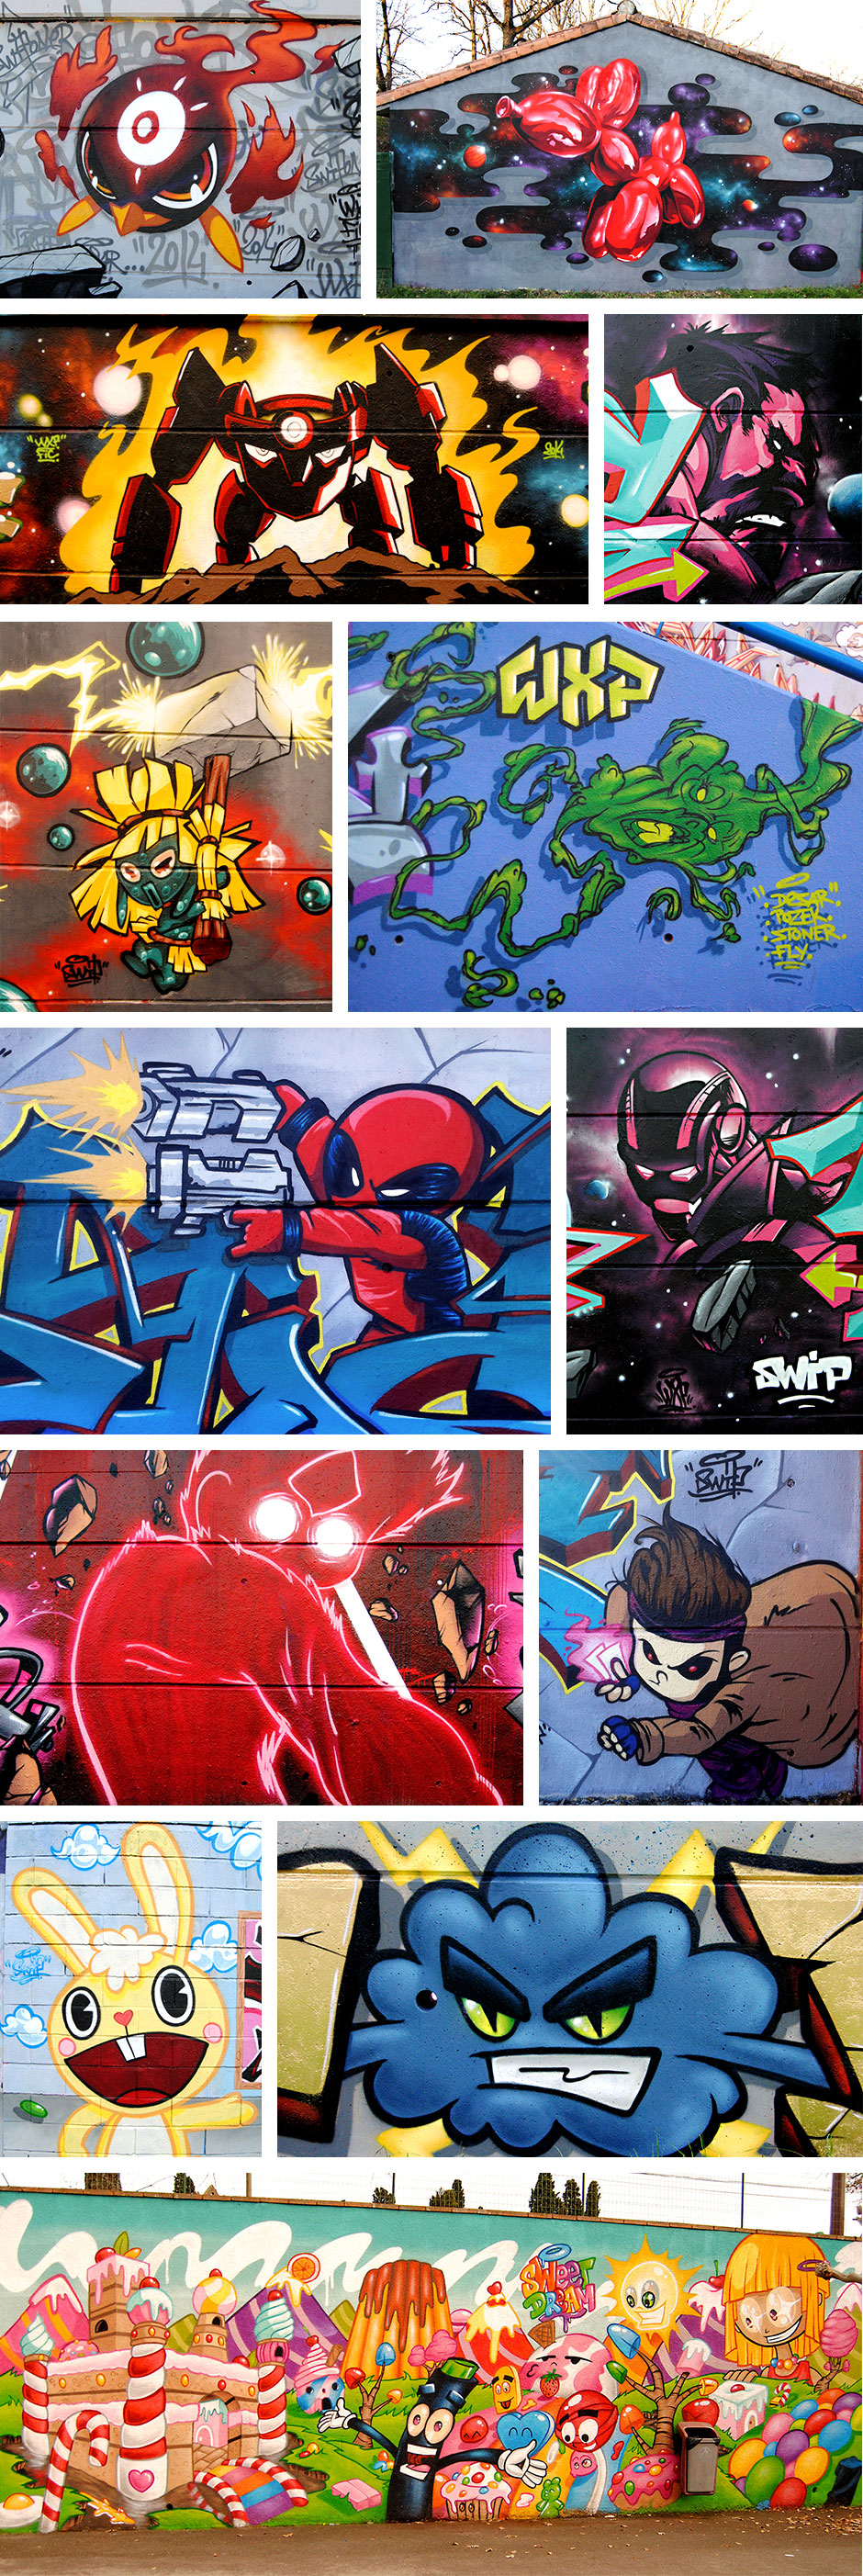 personnages-graffiti-2